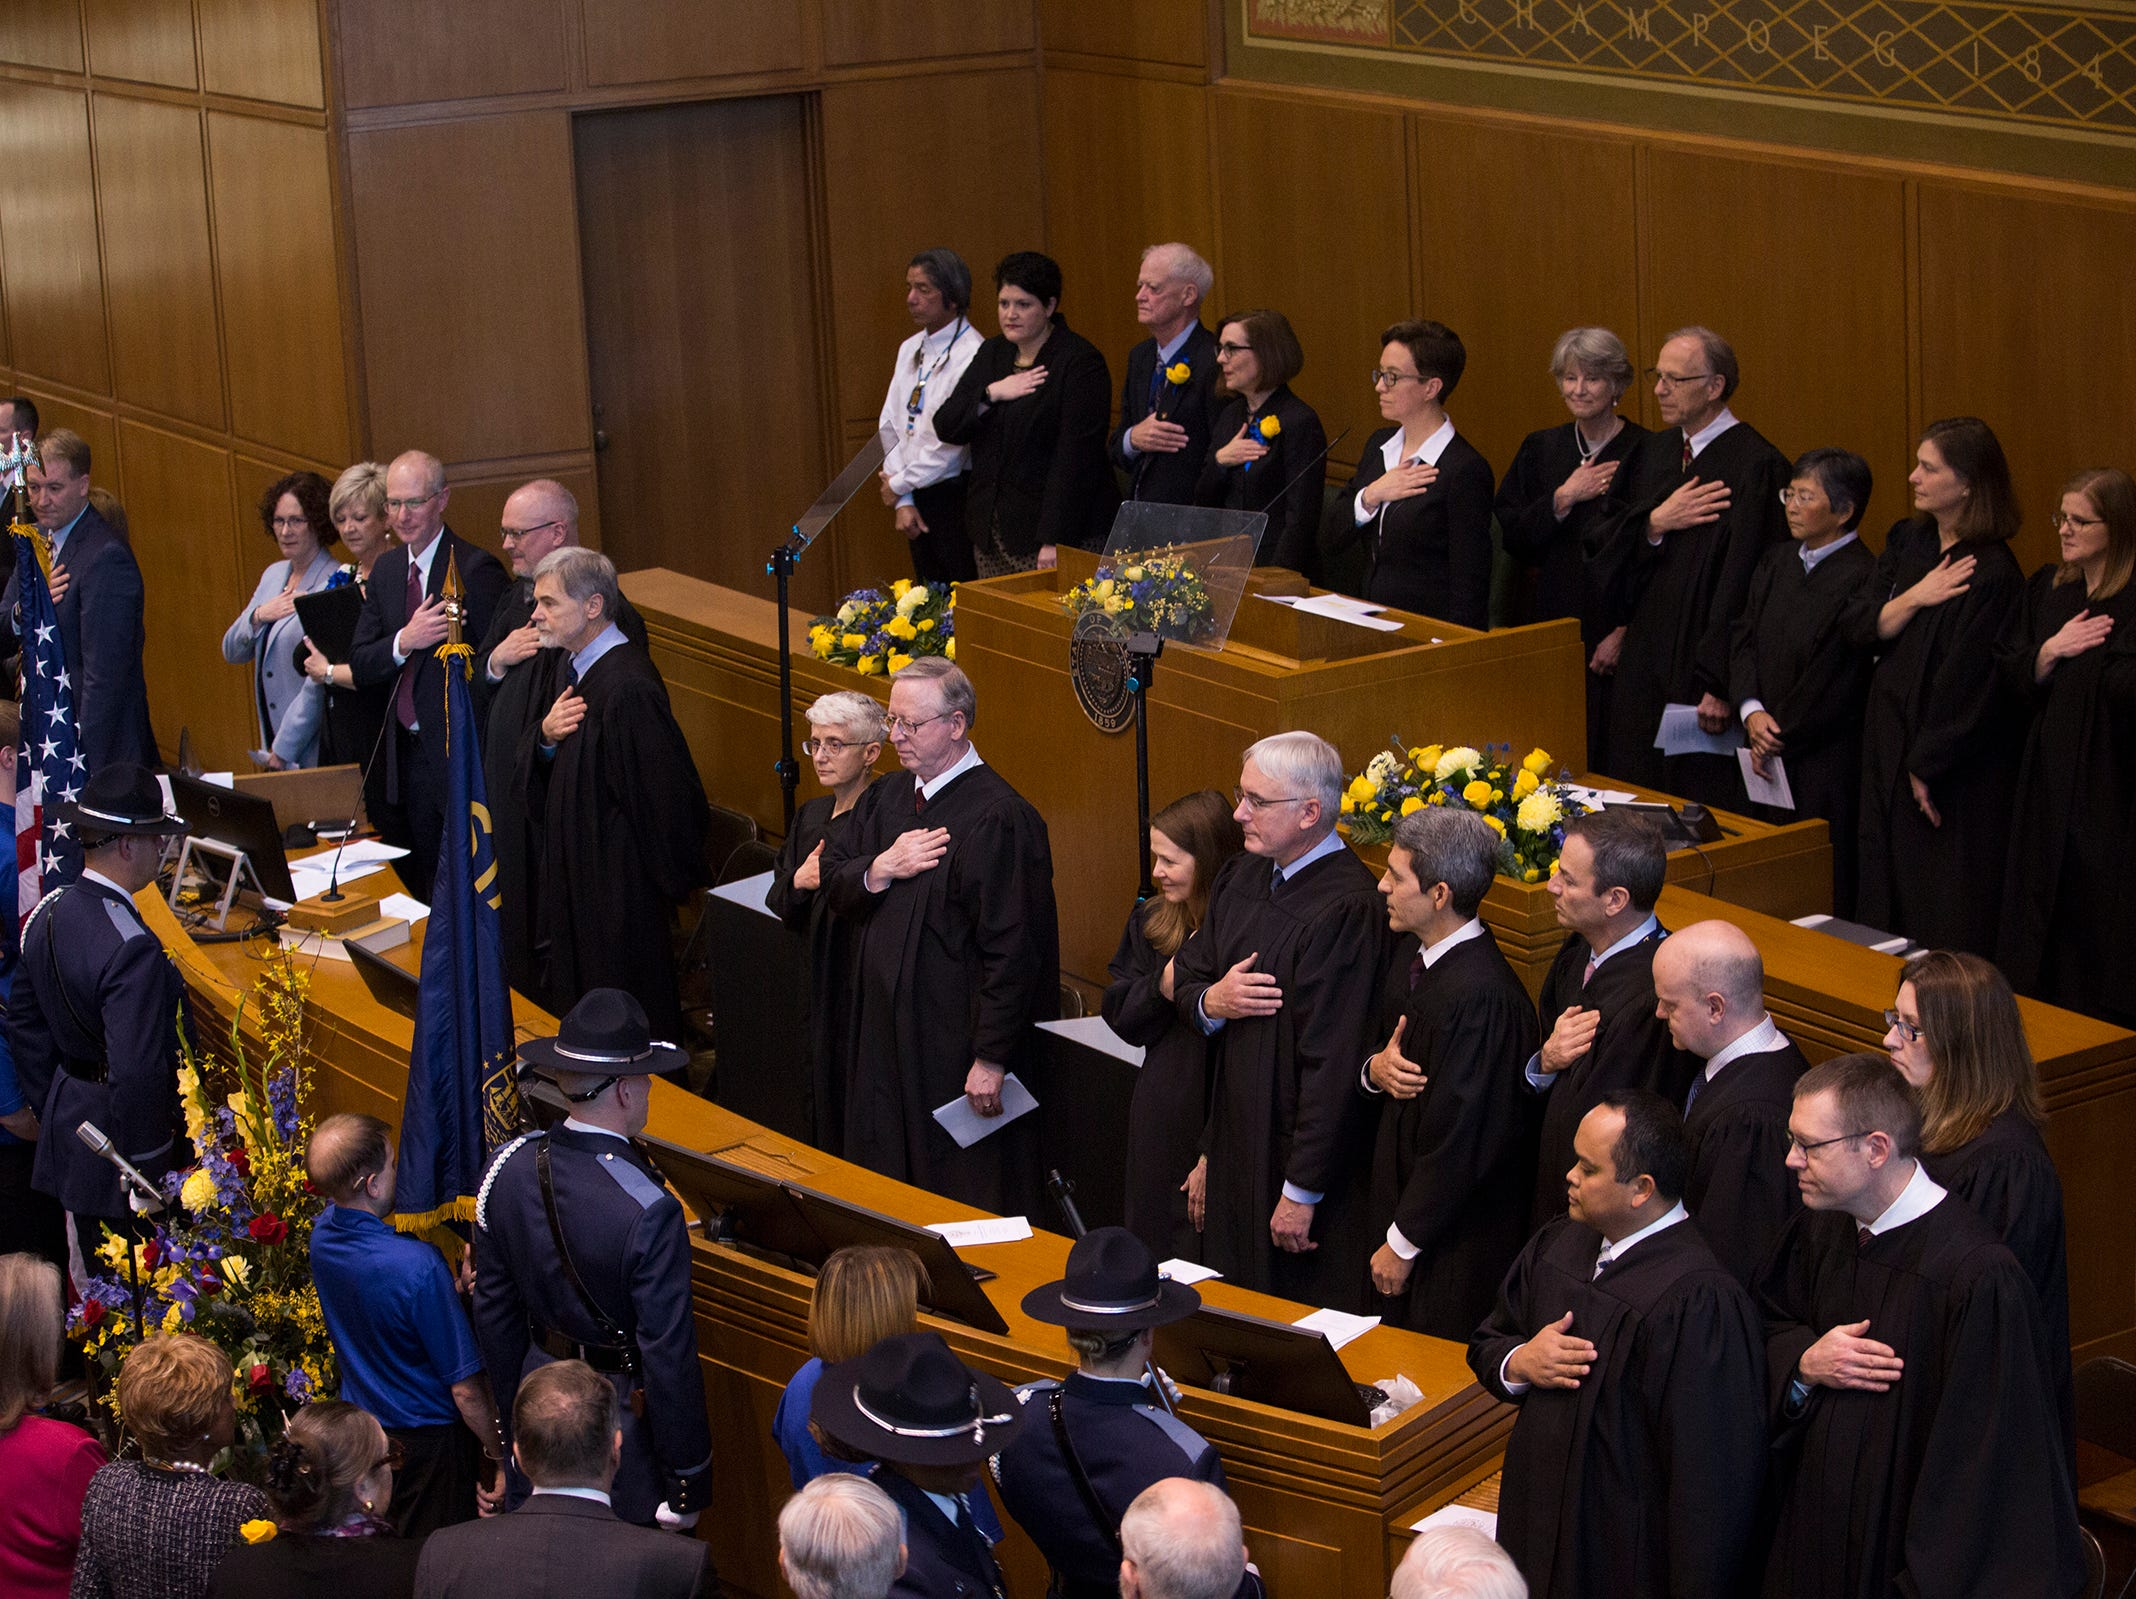 Oregon Supreme Court and Oregon Court of Appeals at Governor Kate Brown's inaugural address at the Oregon State Capitol on Jan. 14, 2019.